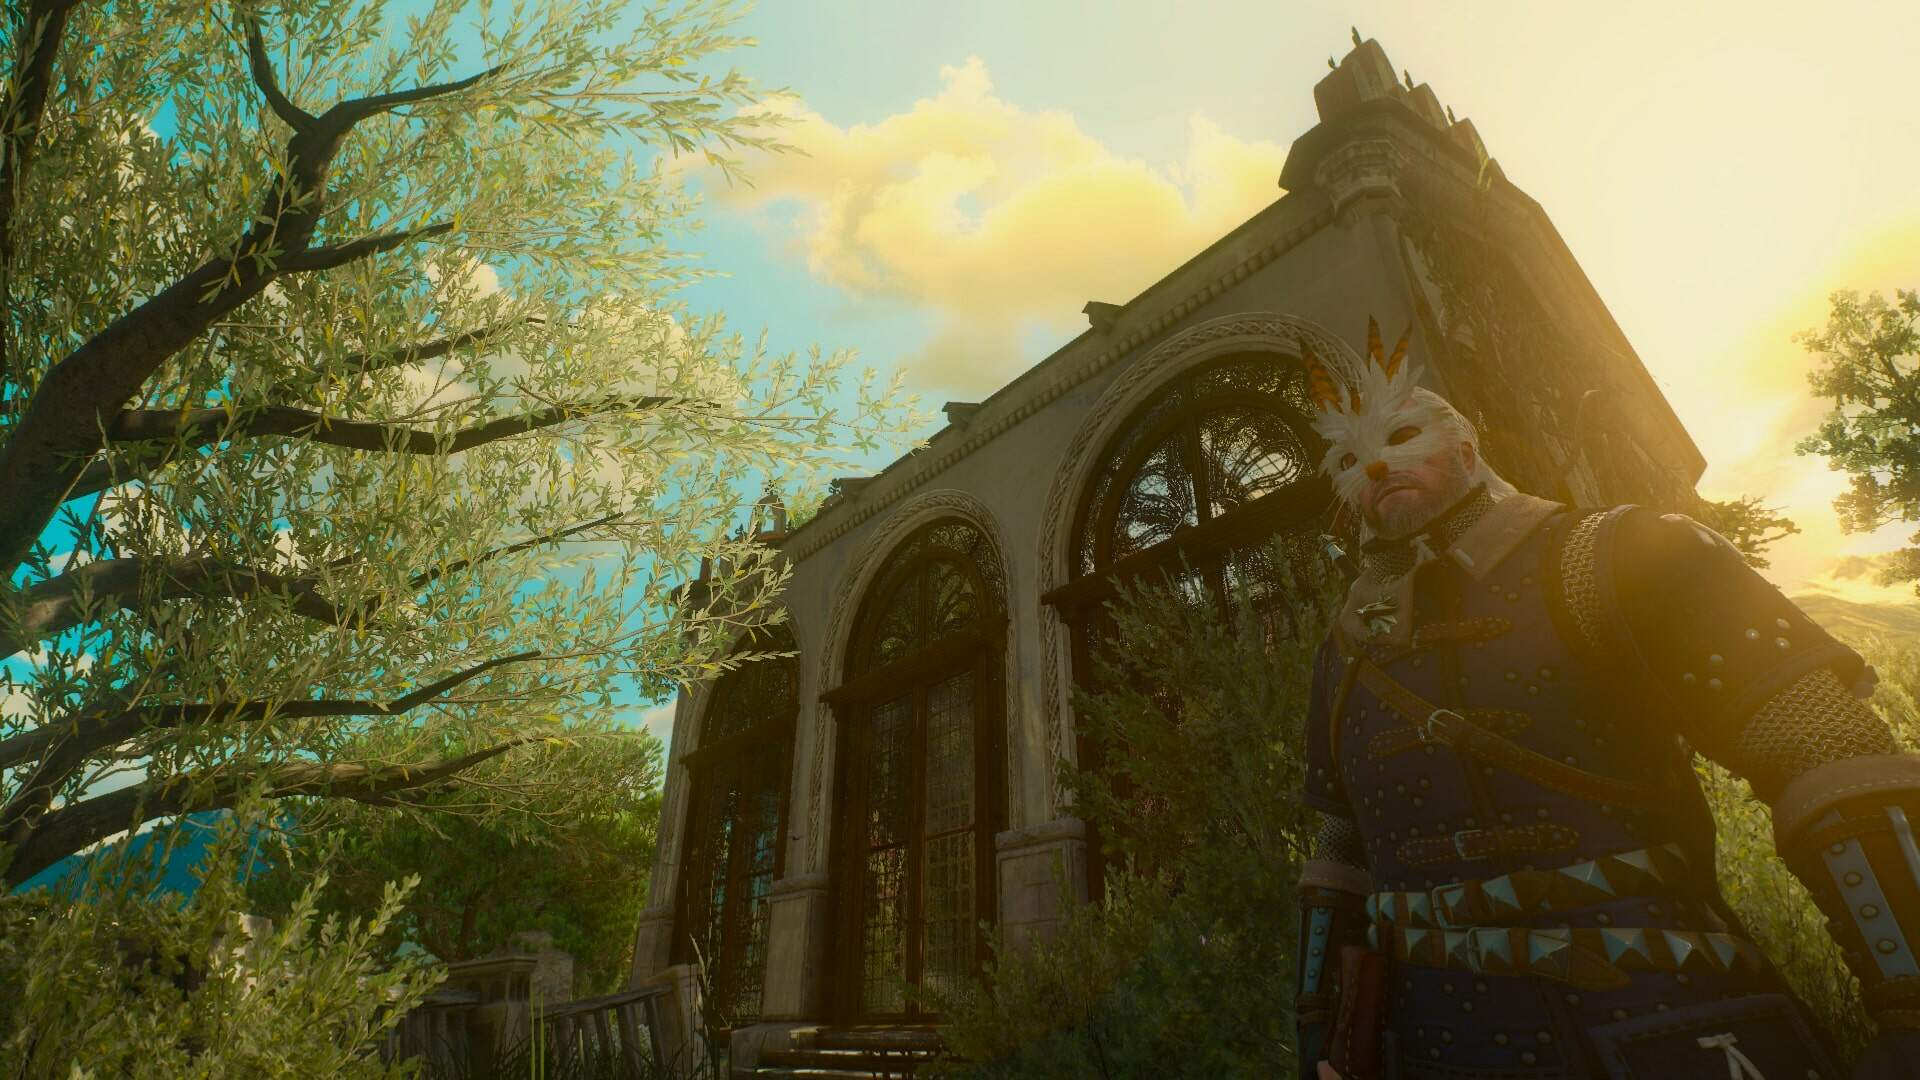 Witcher 3 Blood and Wine: How to Solve the Riddle in the Beast of Toussaint and Find Milton